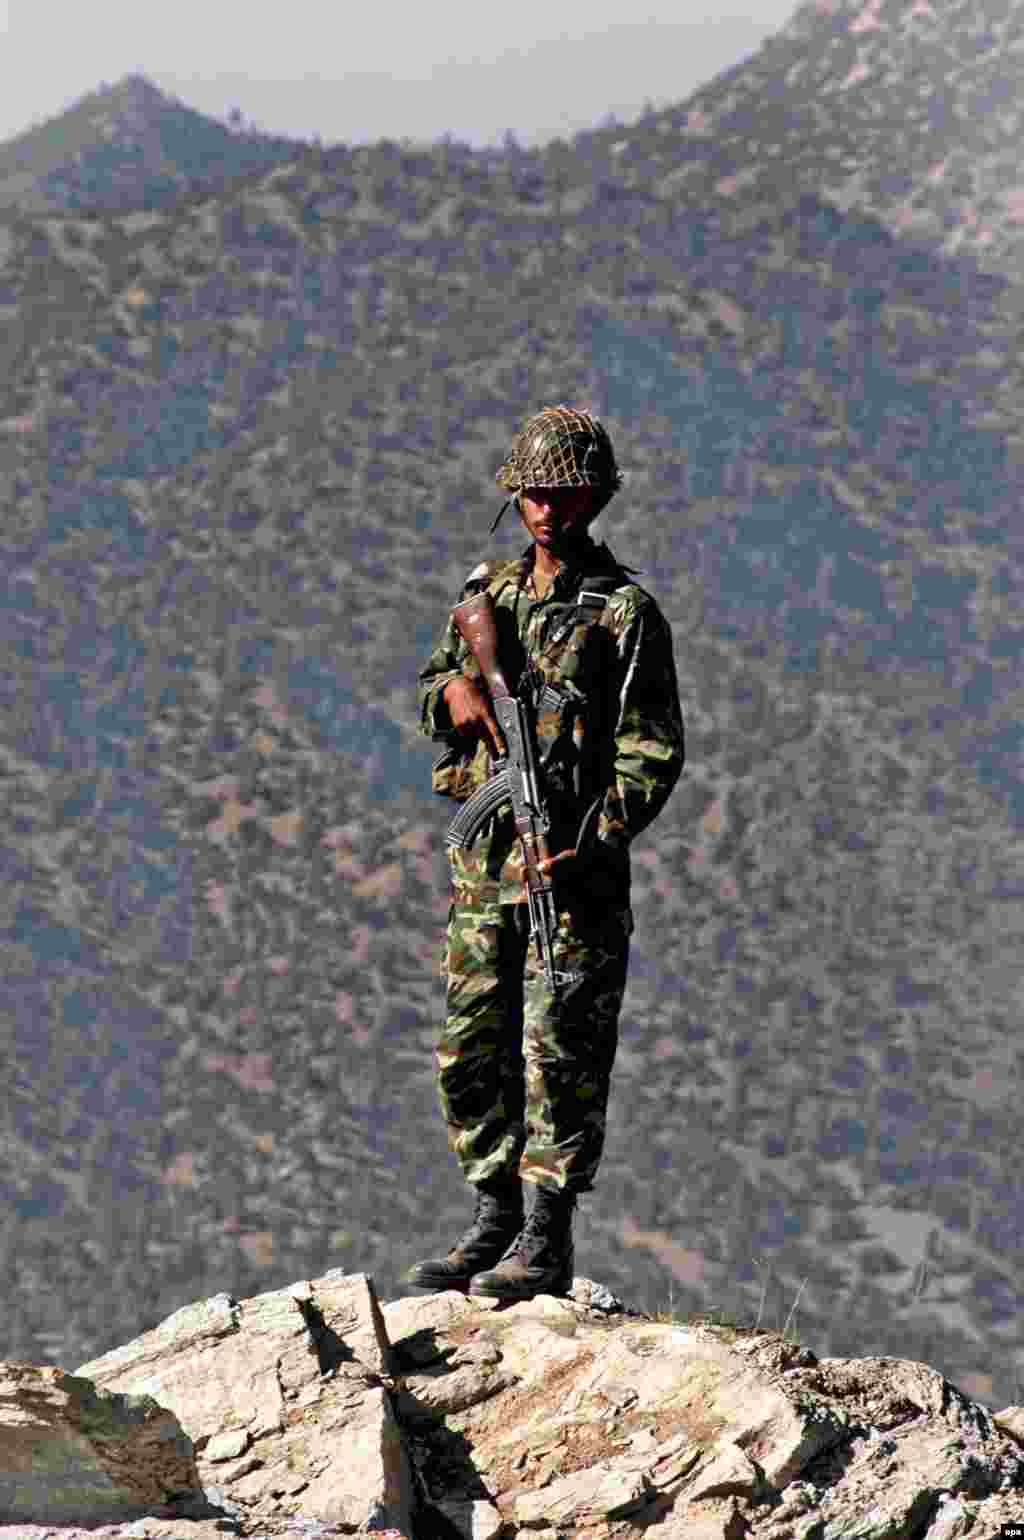 A Pakistani soldier monitors the Afghan-Pakistan border in 2005 (epa) - The challenge of uprooting the insurgents is hard because many are based in tribal parts of Pakistan. The ease with which they cross the long border has aggravated long-standing tensions. Pakistani forces launched major operations in 2006 in border areas, but suspicions remain in Afghanistan that some in Islamabad are keen to keep Afghanistan a weak client state.